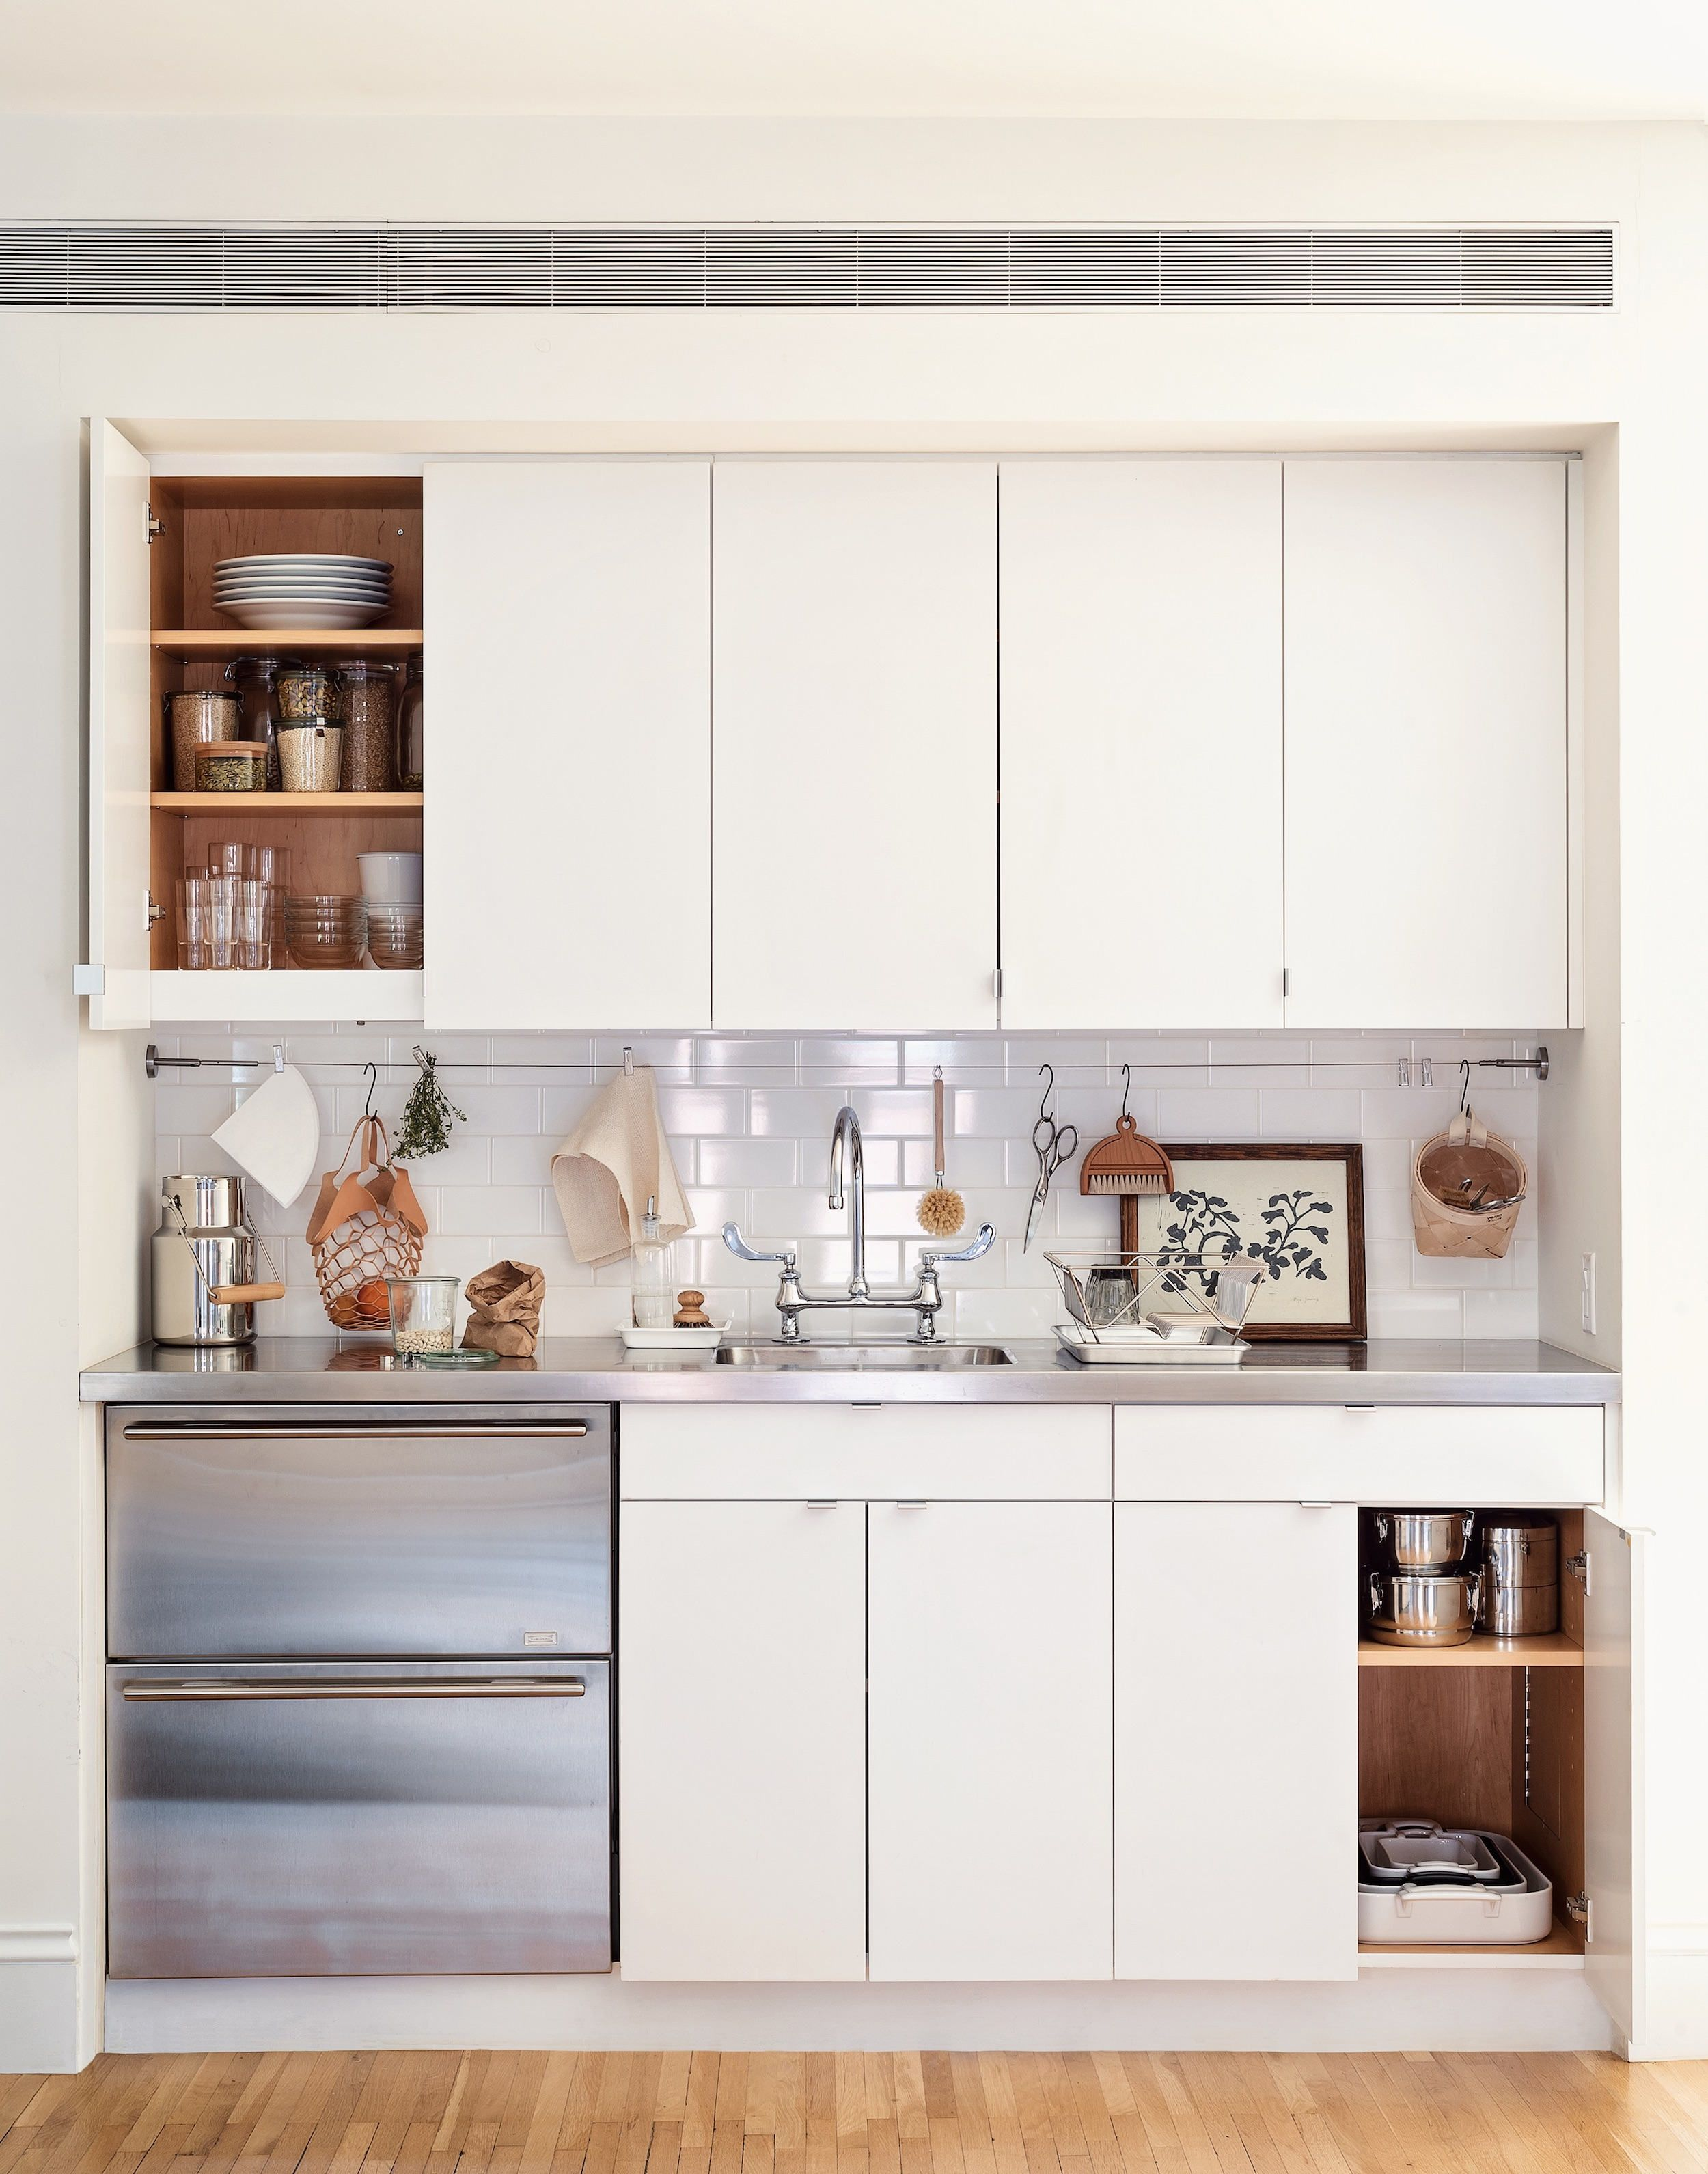 5 Space Saving Ideas To Steal From A Brooklyn Kitchen Ikea Hack Included In 2020 Brooklyn Kitchen Kitchen Bar Design Tiny Kitchen